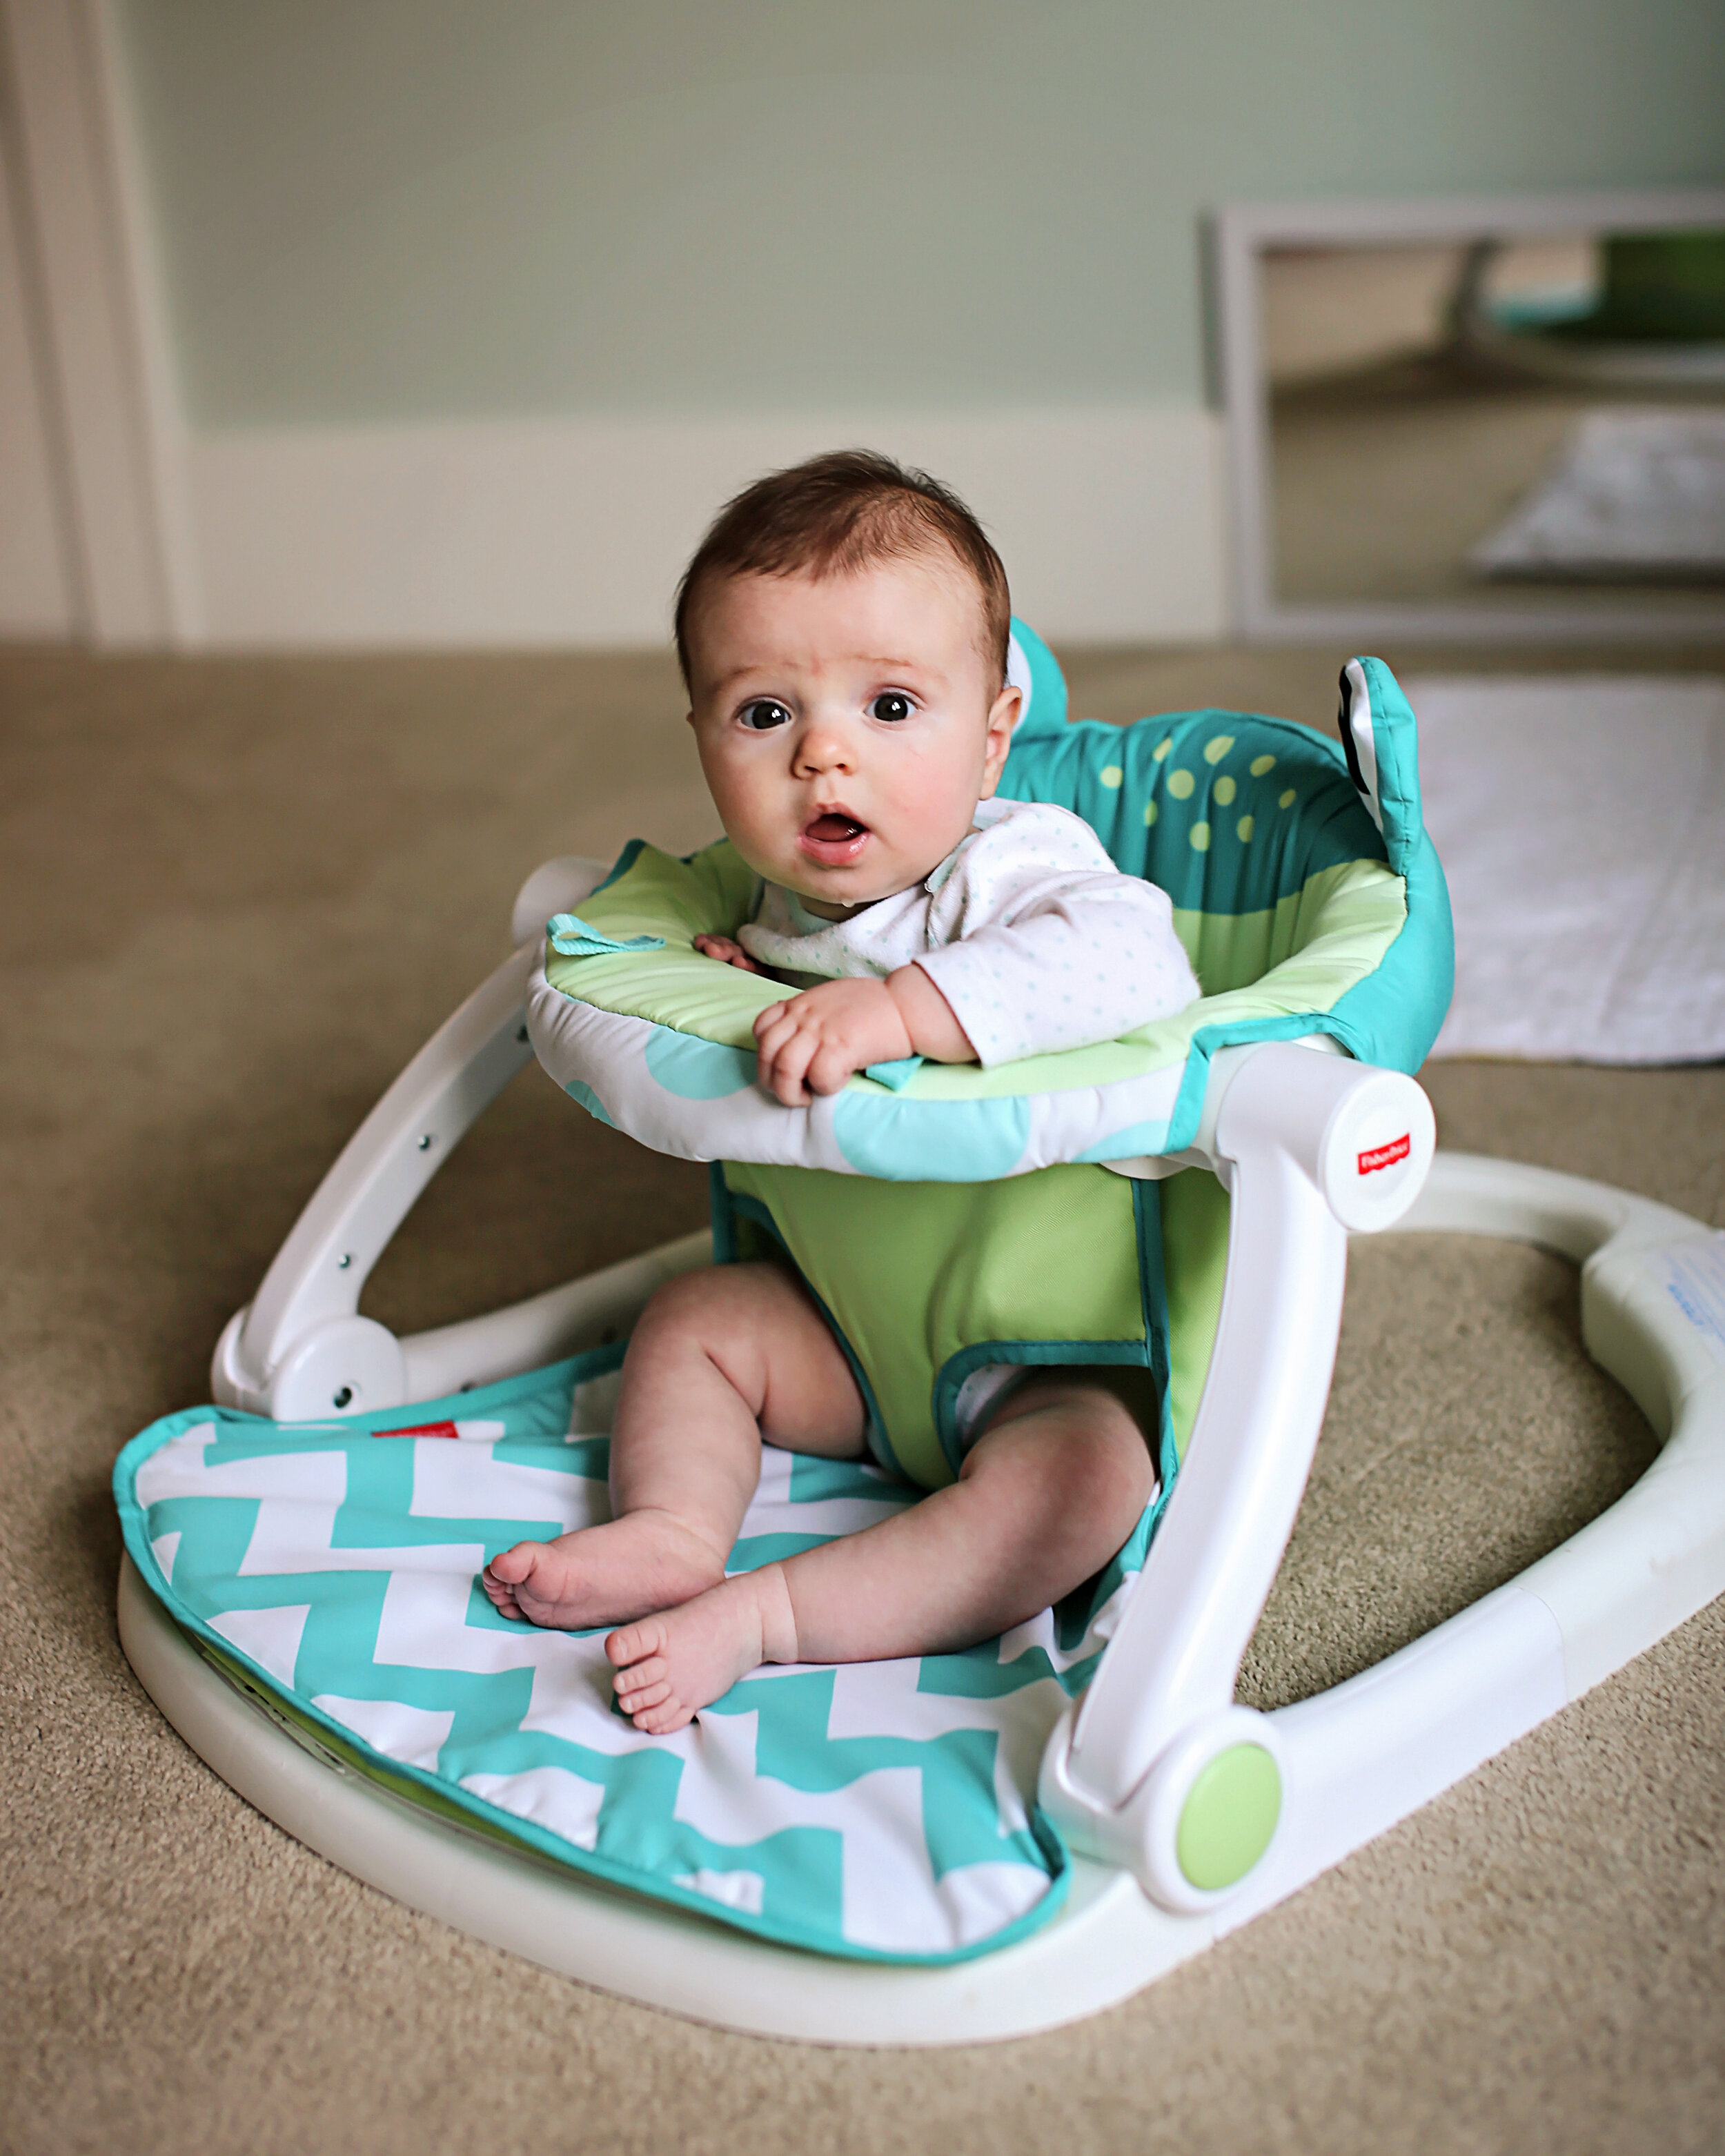 Choosing The Best Baby Seat And Using It Wisely Cando Kiddo